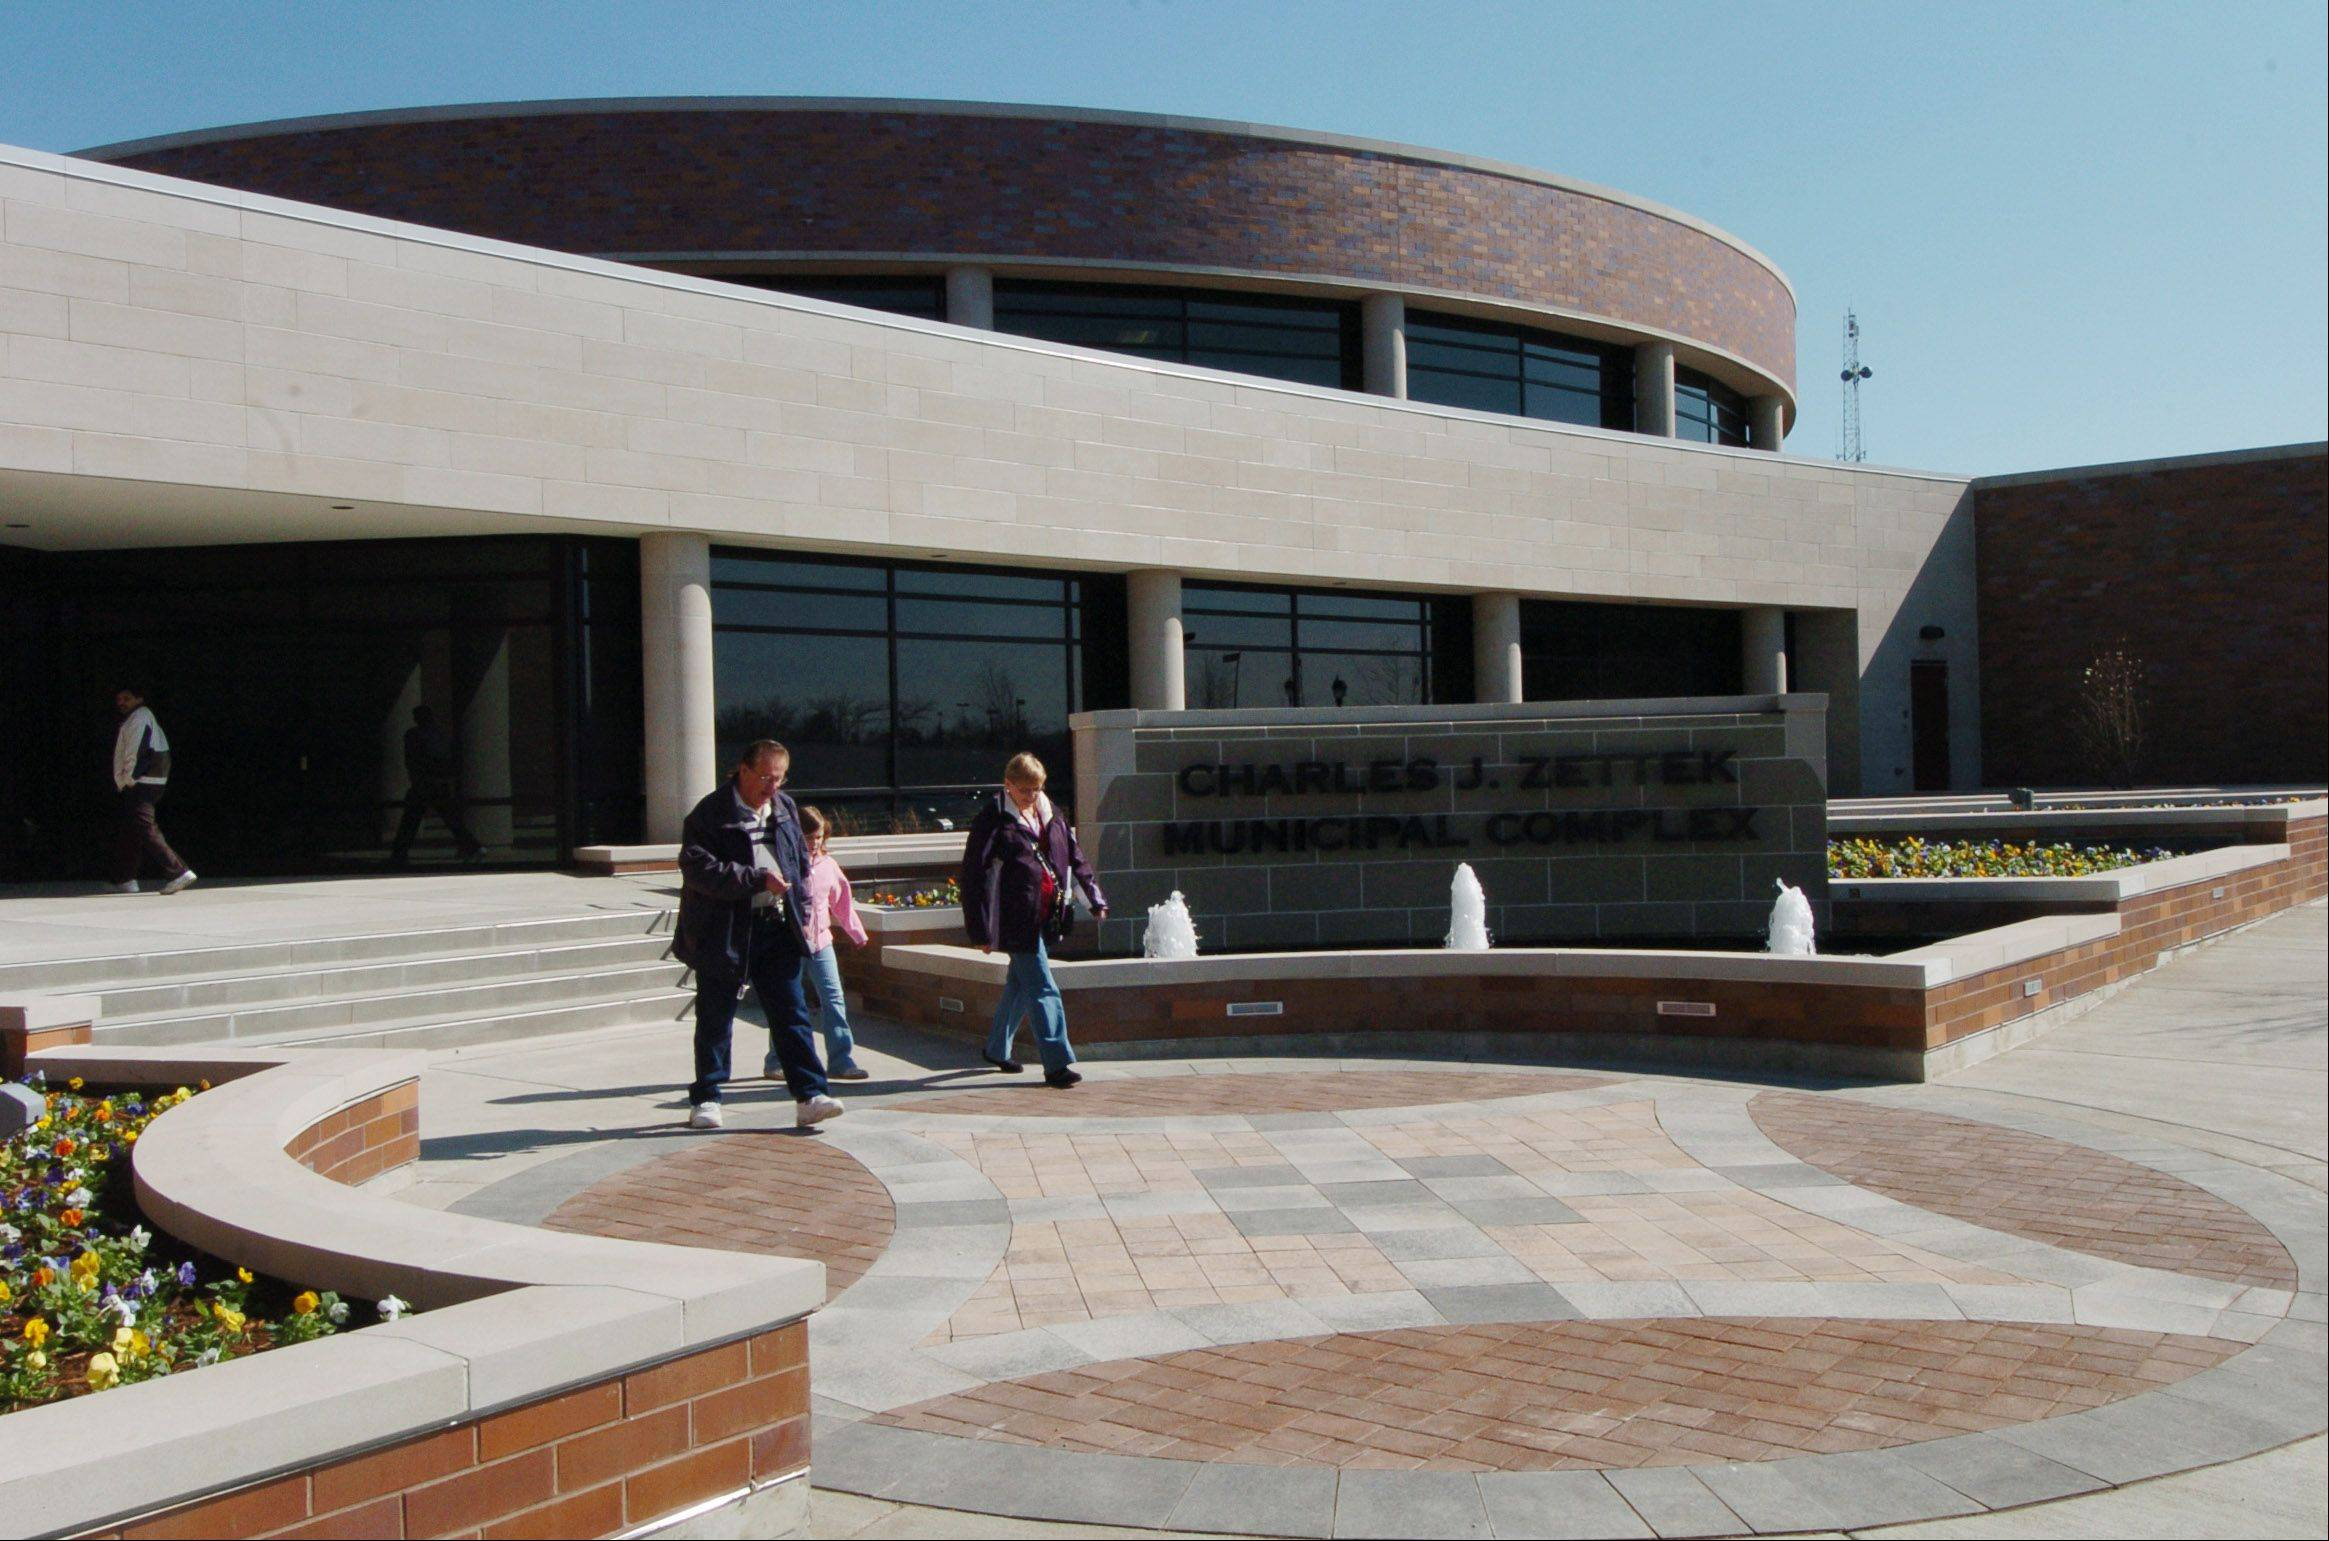 ELK GROVE VILLAGE: $2,323 PER RESIDENT: Much of Elk Grove Village's $77 million debt is a result of the financing and construction of its new government complex.